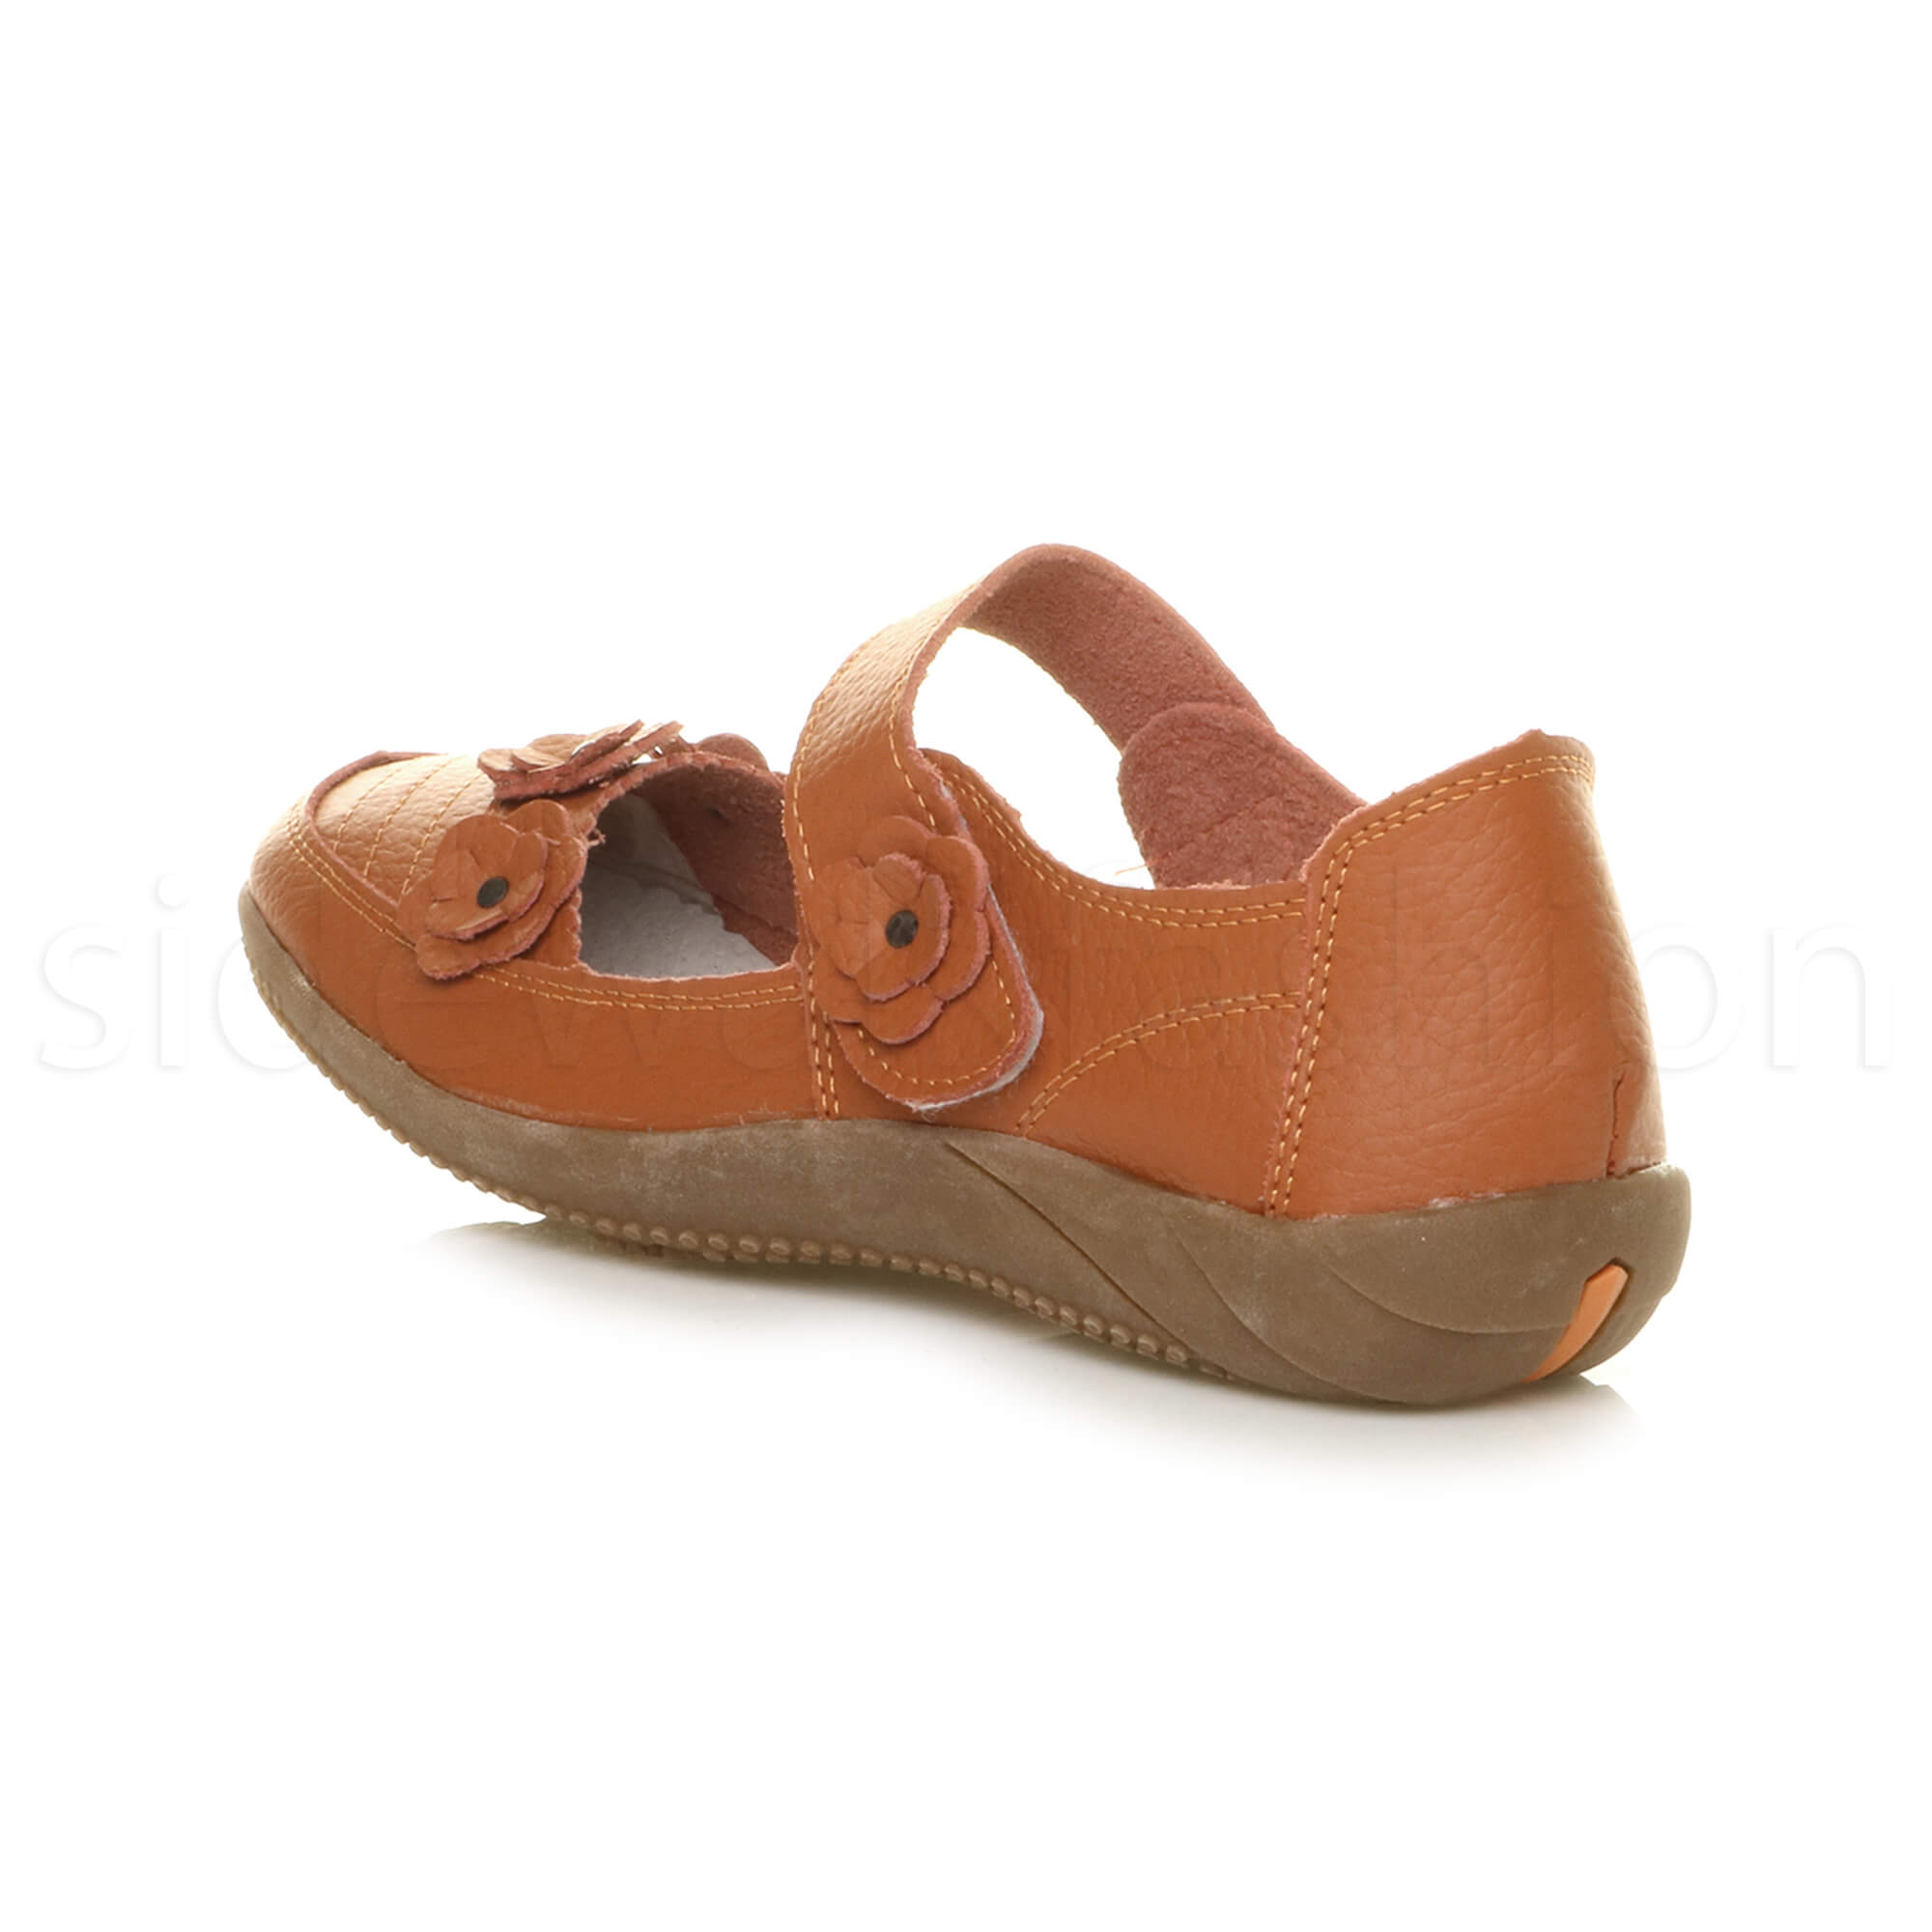 Womens-ladies-leather-comfort-walking-casual-sandals-mary-jane-strap-shoes-size thumbnail 15